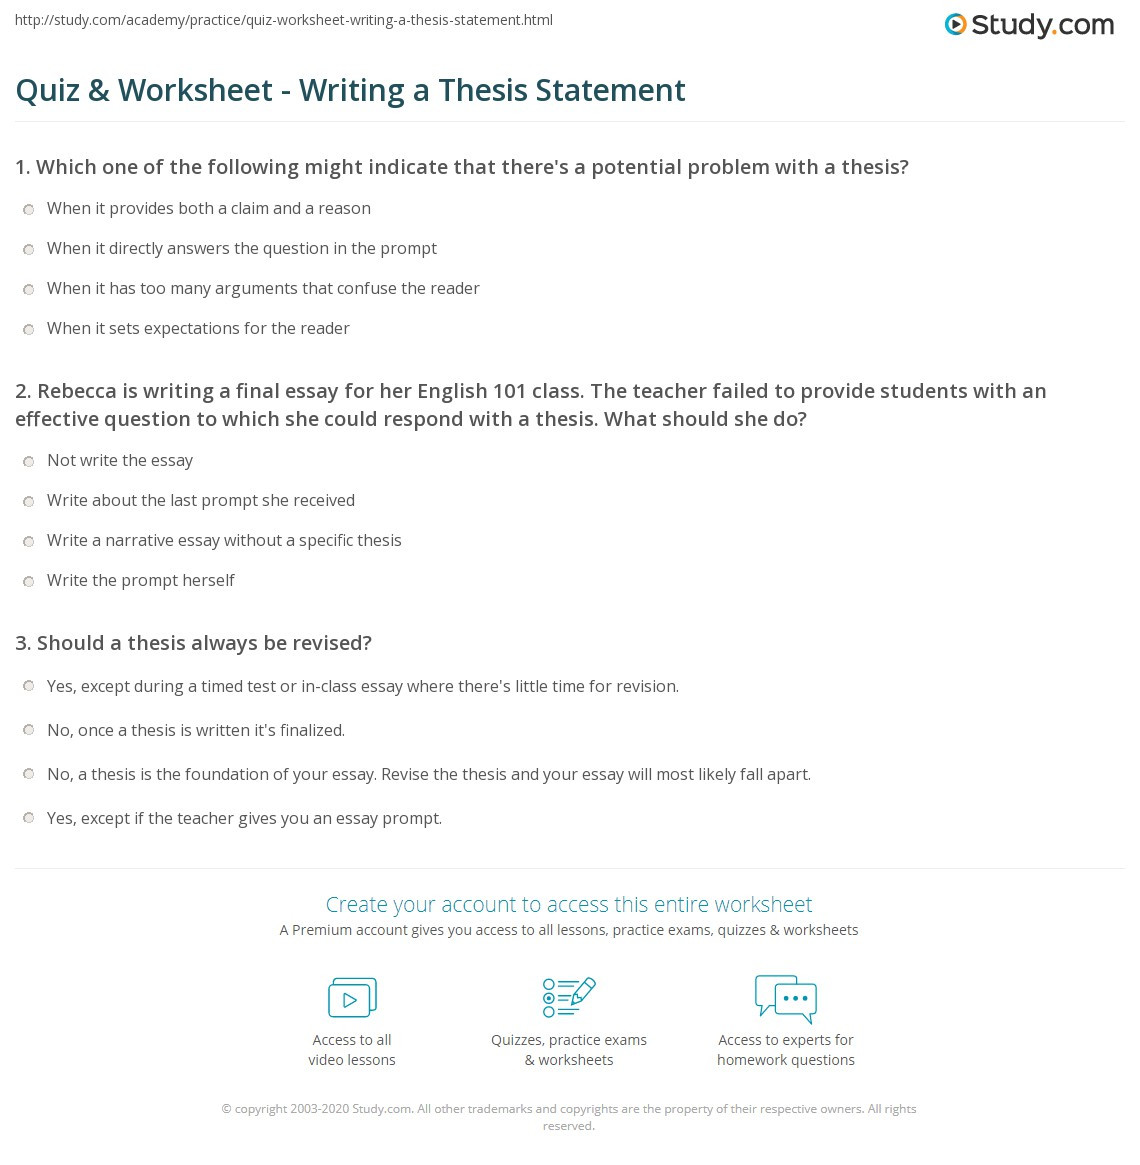 Thesis Statement Worksheet High School Quiz & Worksheet Writing A thesis Statement